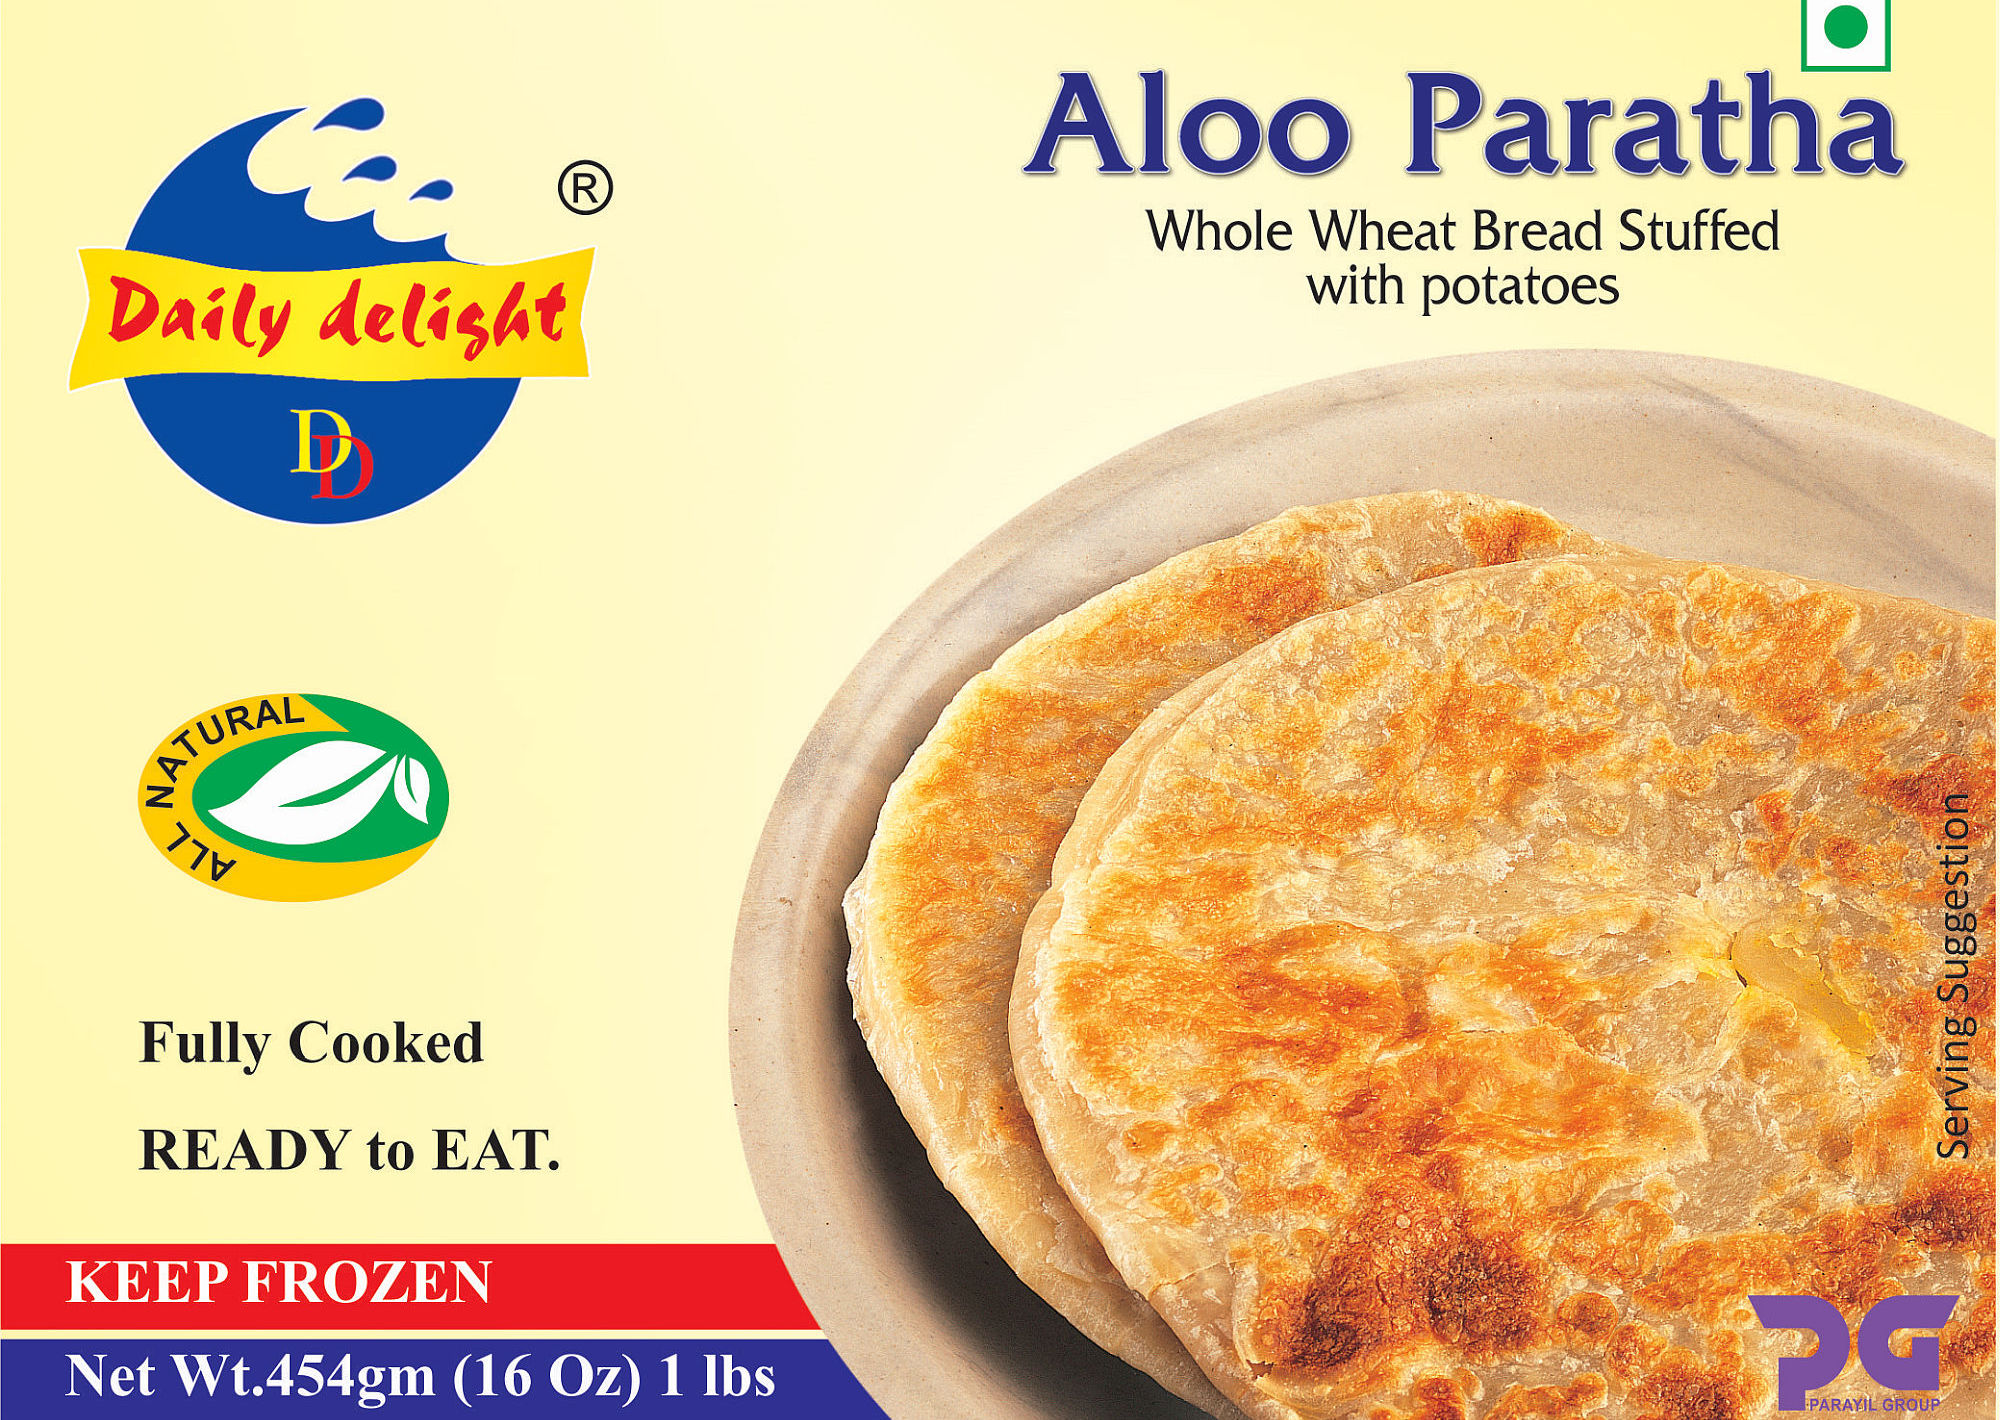 Daily Delight Aloo Paratha